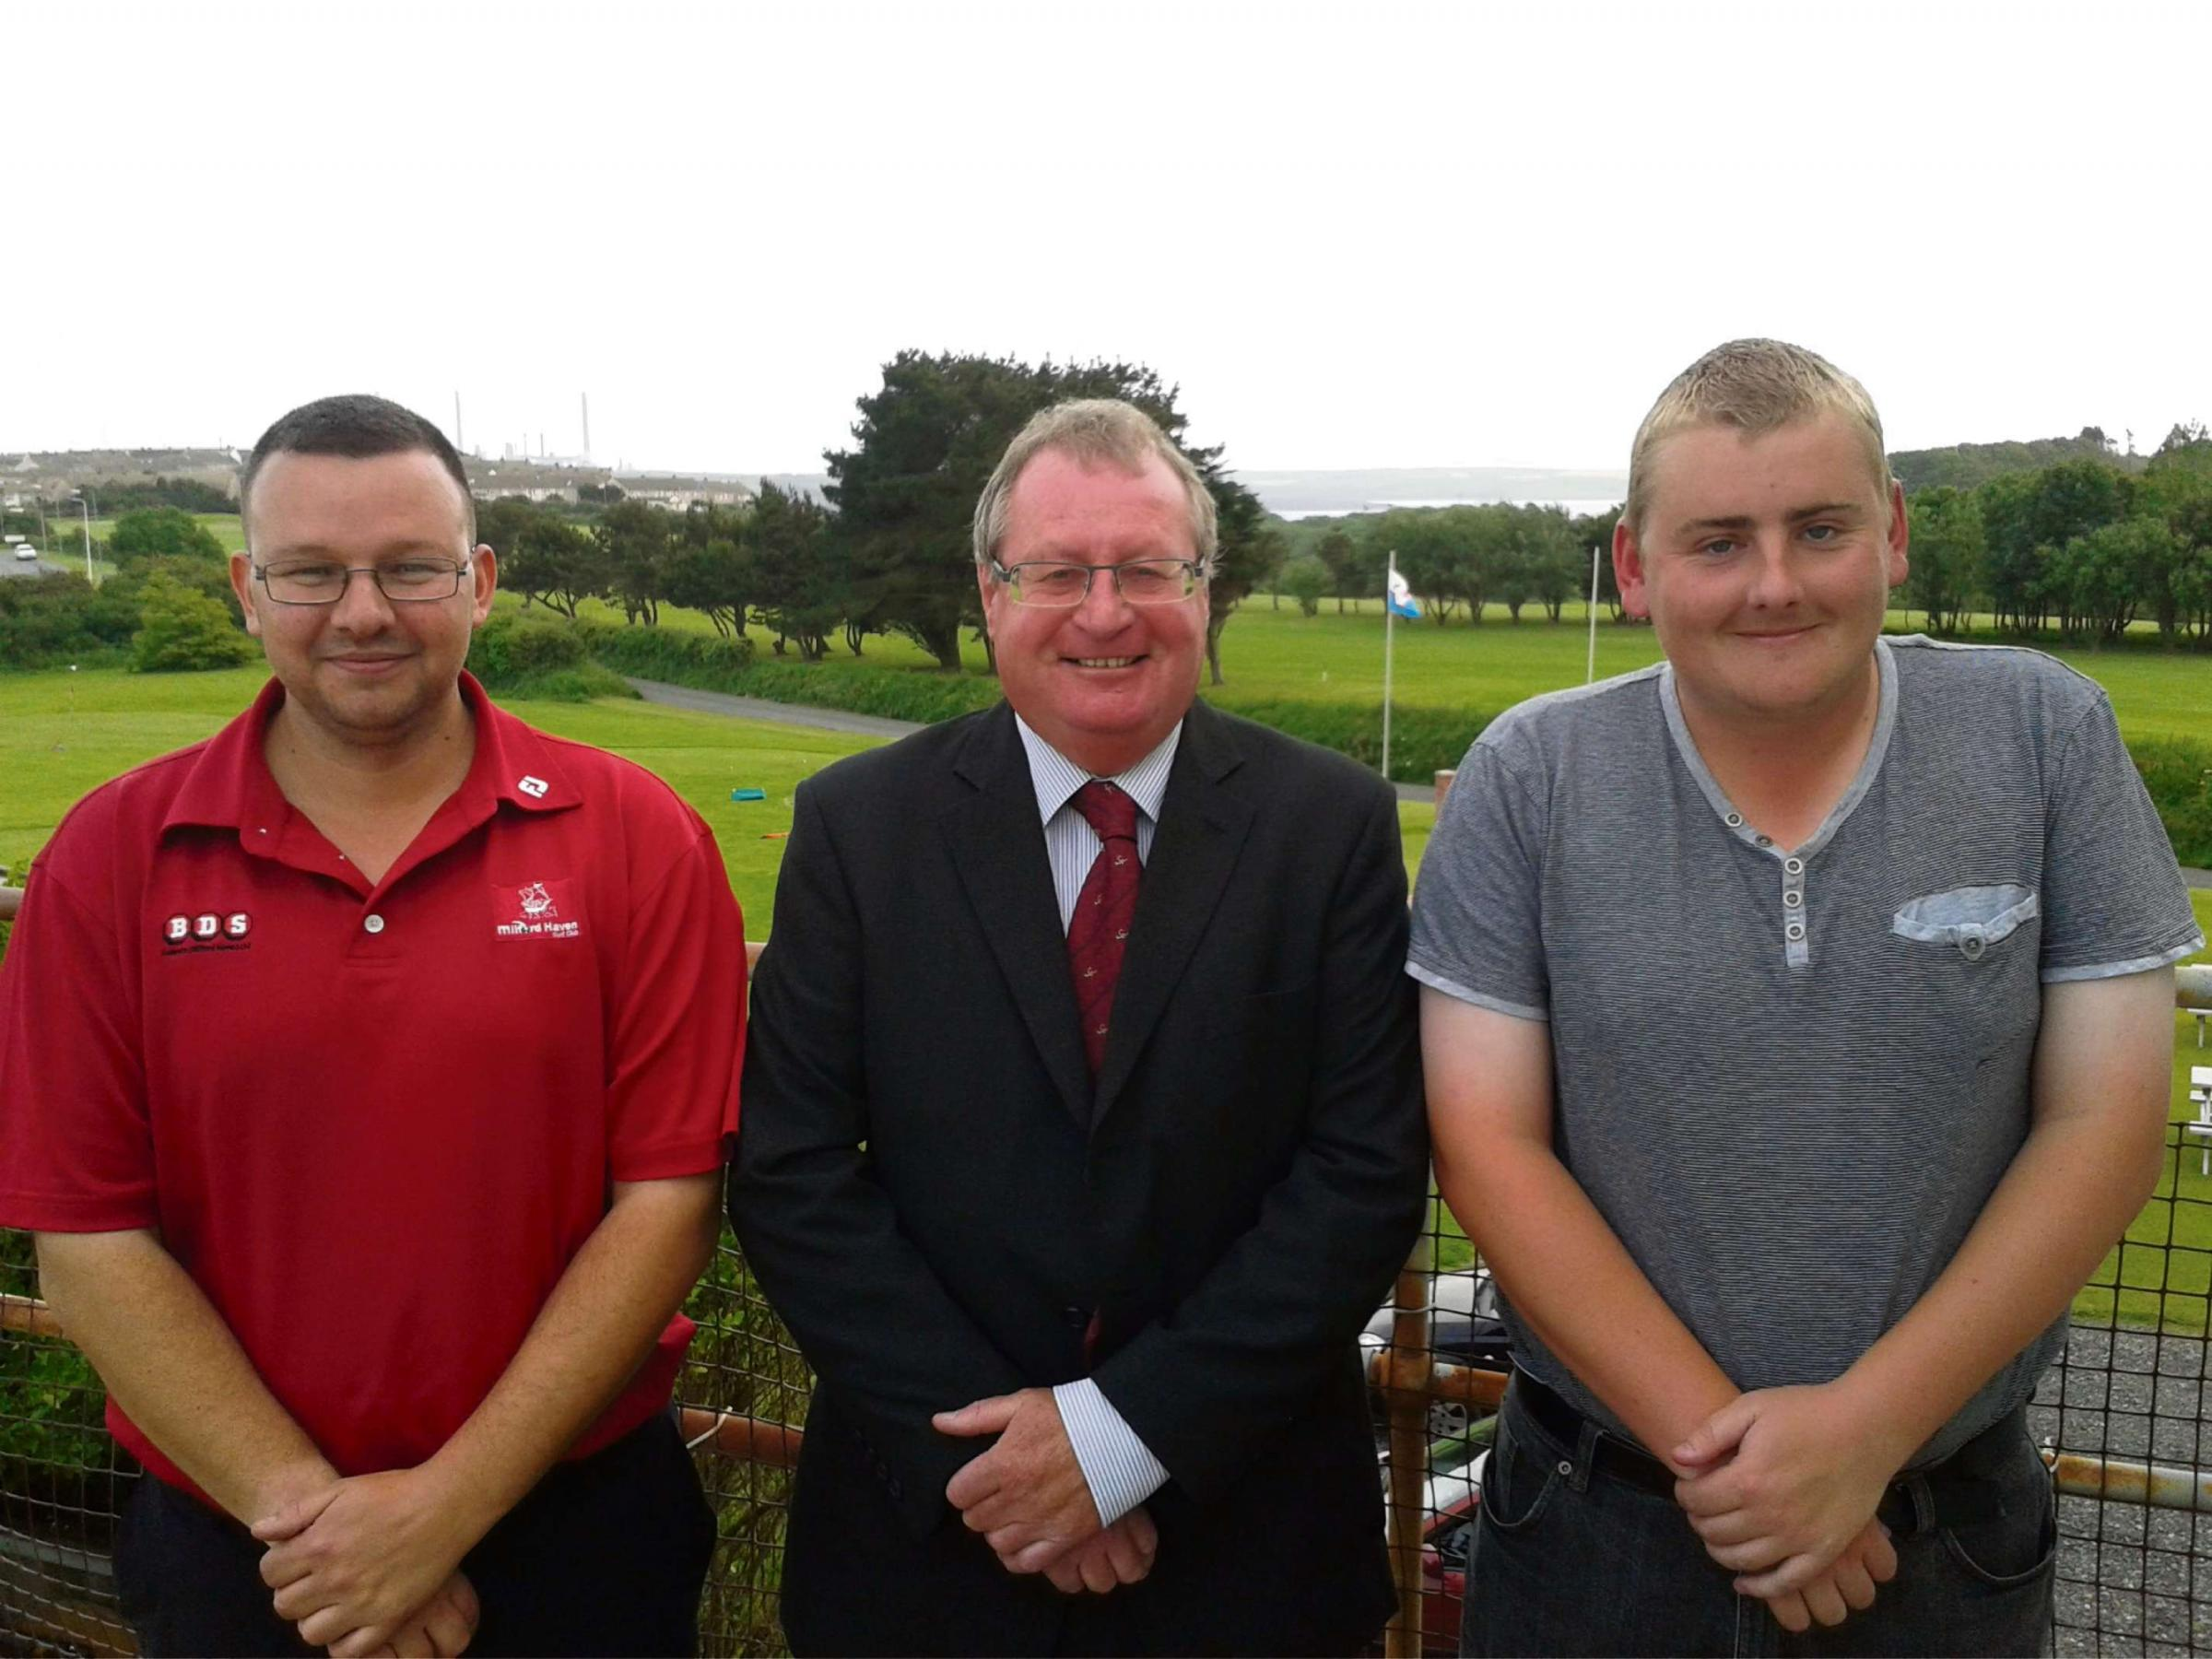 Sensational Scott wins stableford